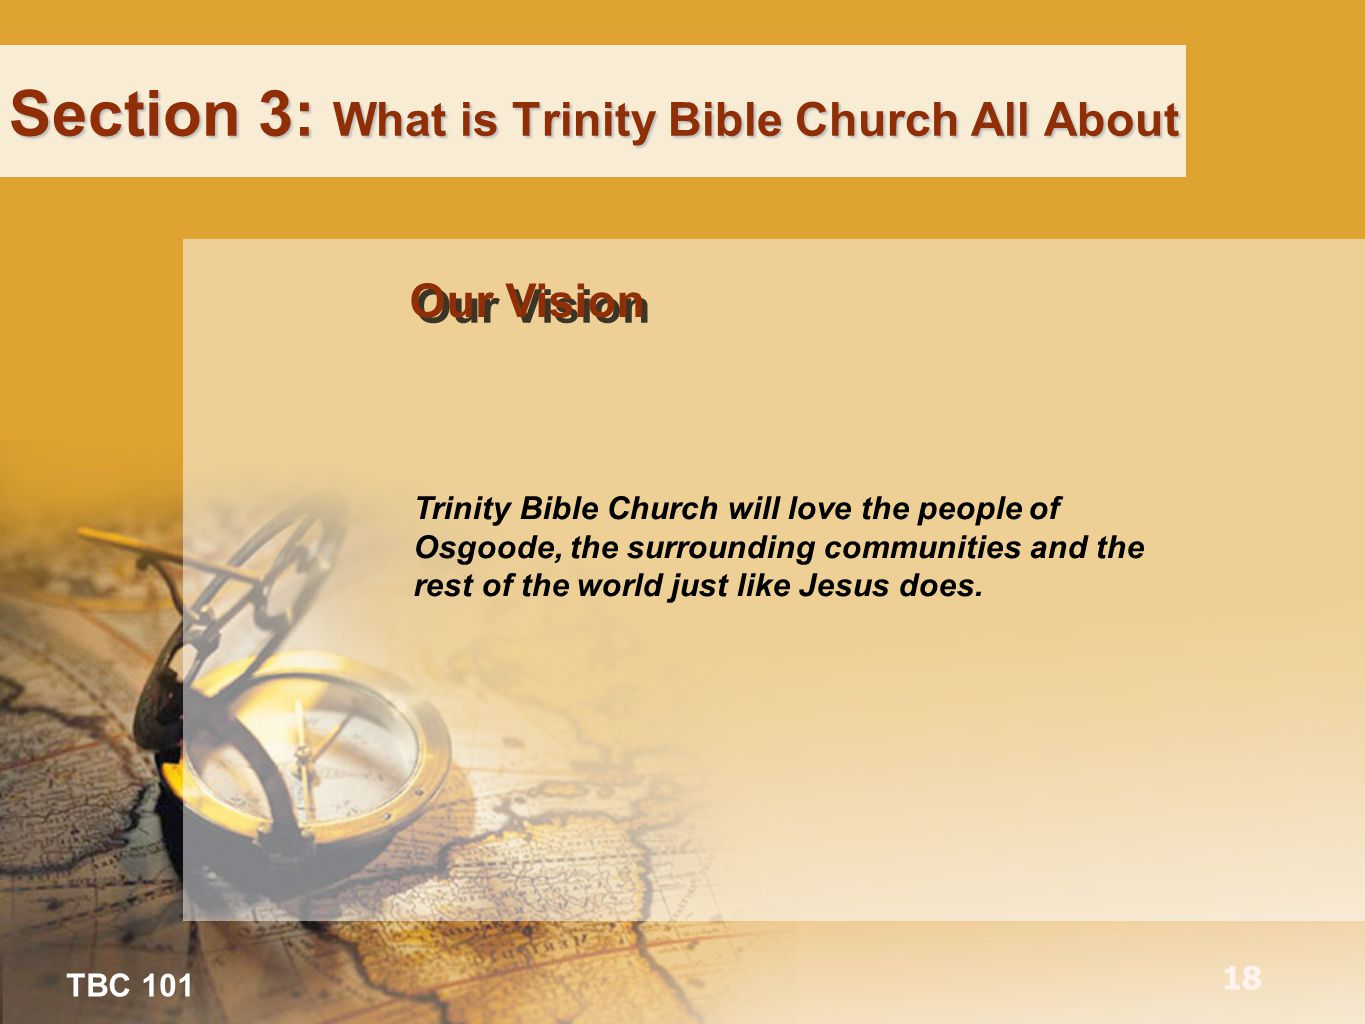 TBC 101 18 Section 3: What is Trinity Bible Church All About Trinity Bible Church will love the people of Osgoode, the surrounding communities and the rest of the world just like Jesus does.